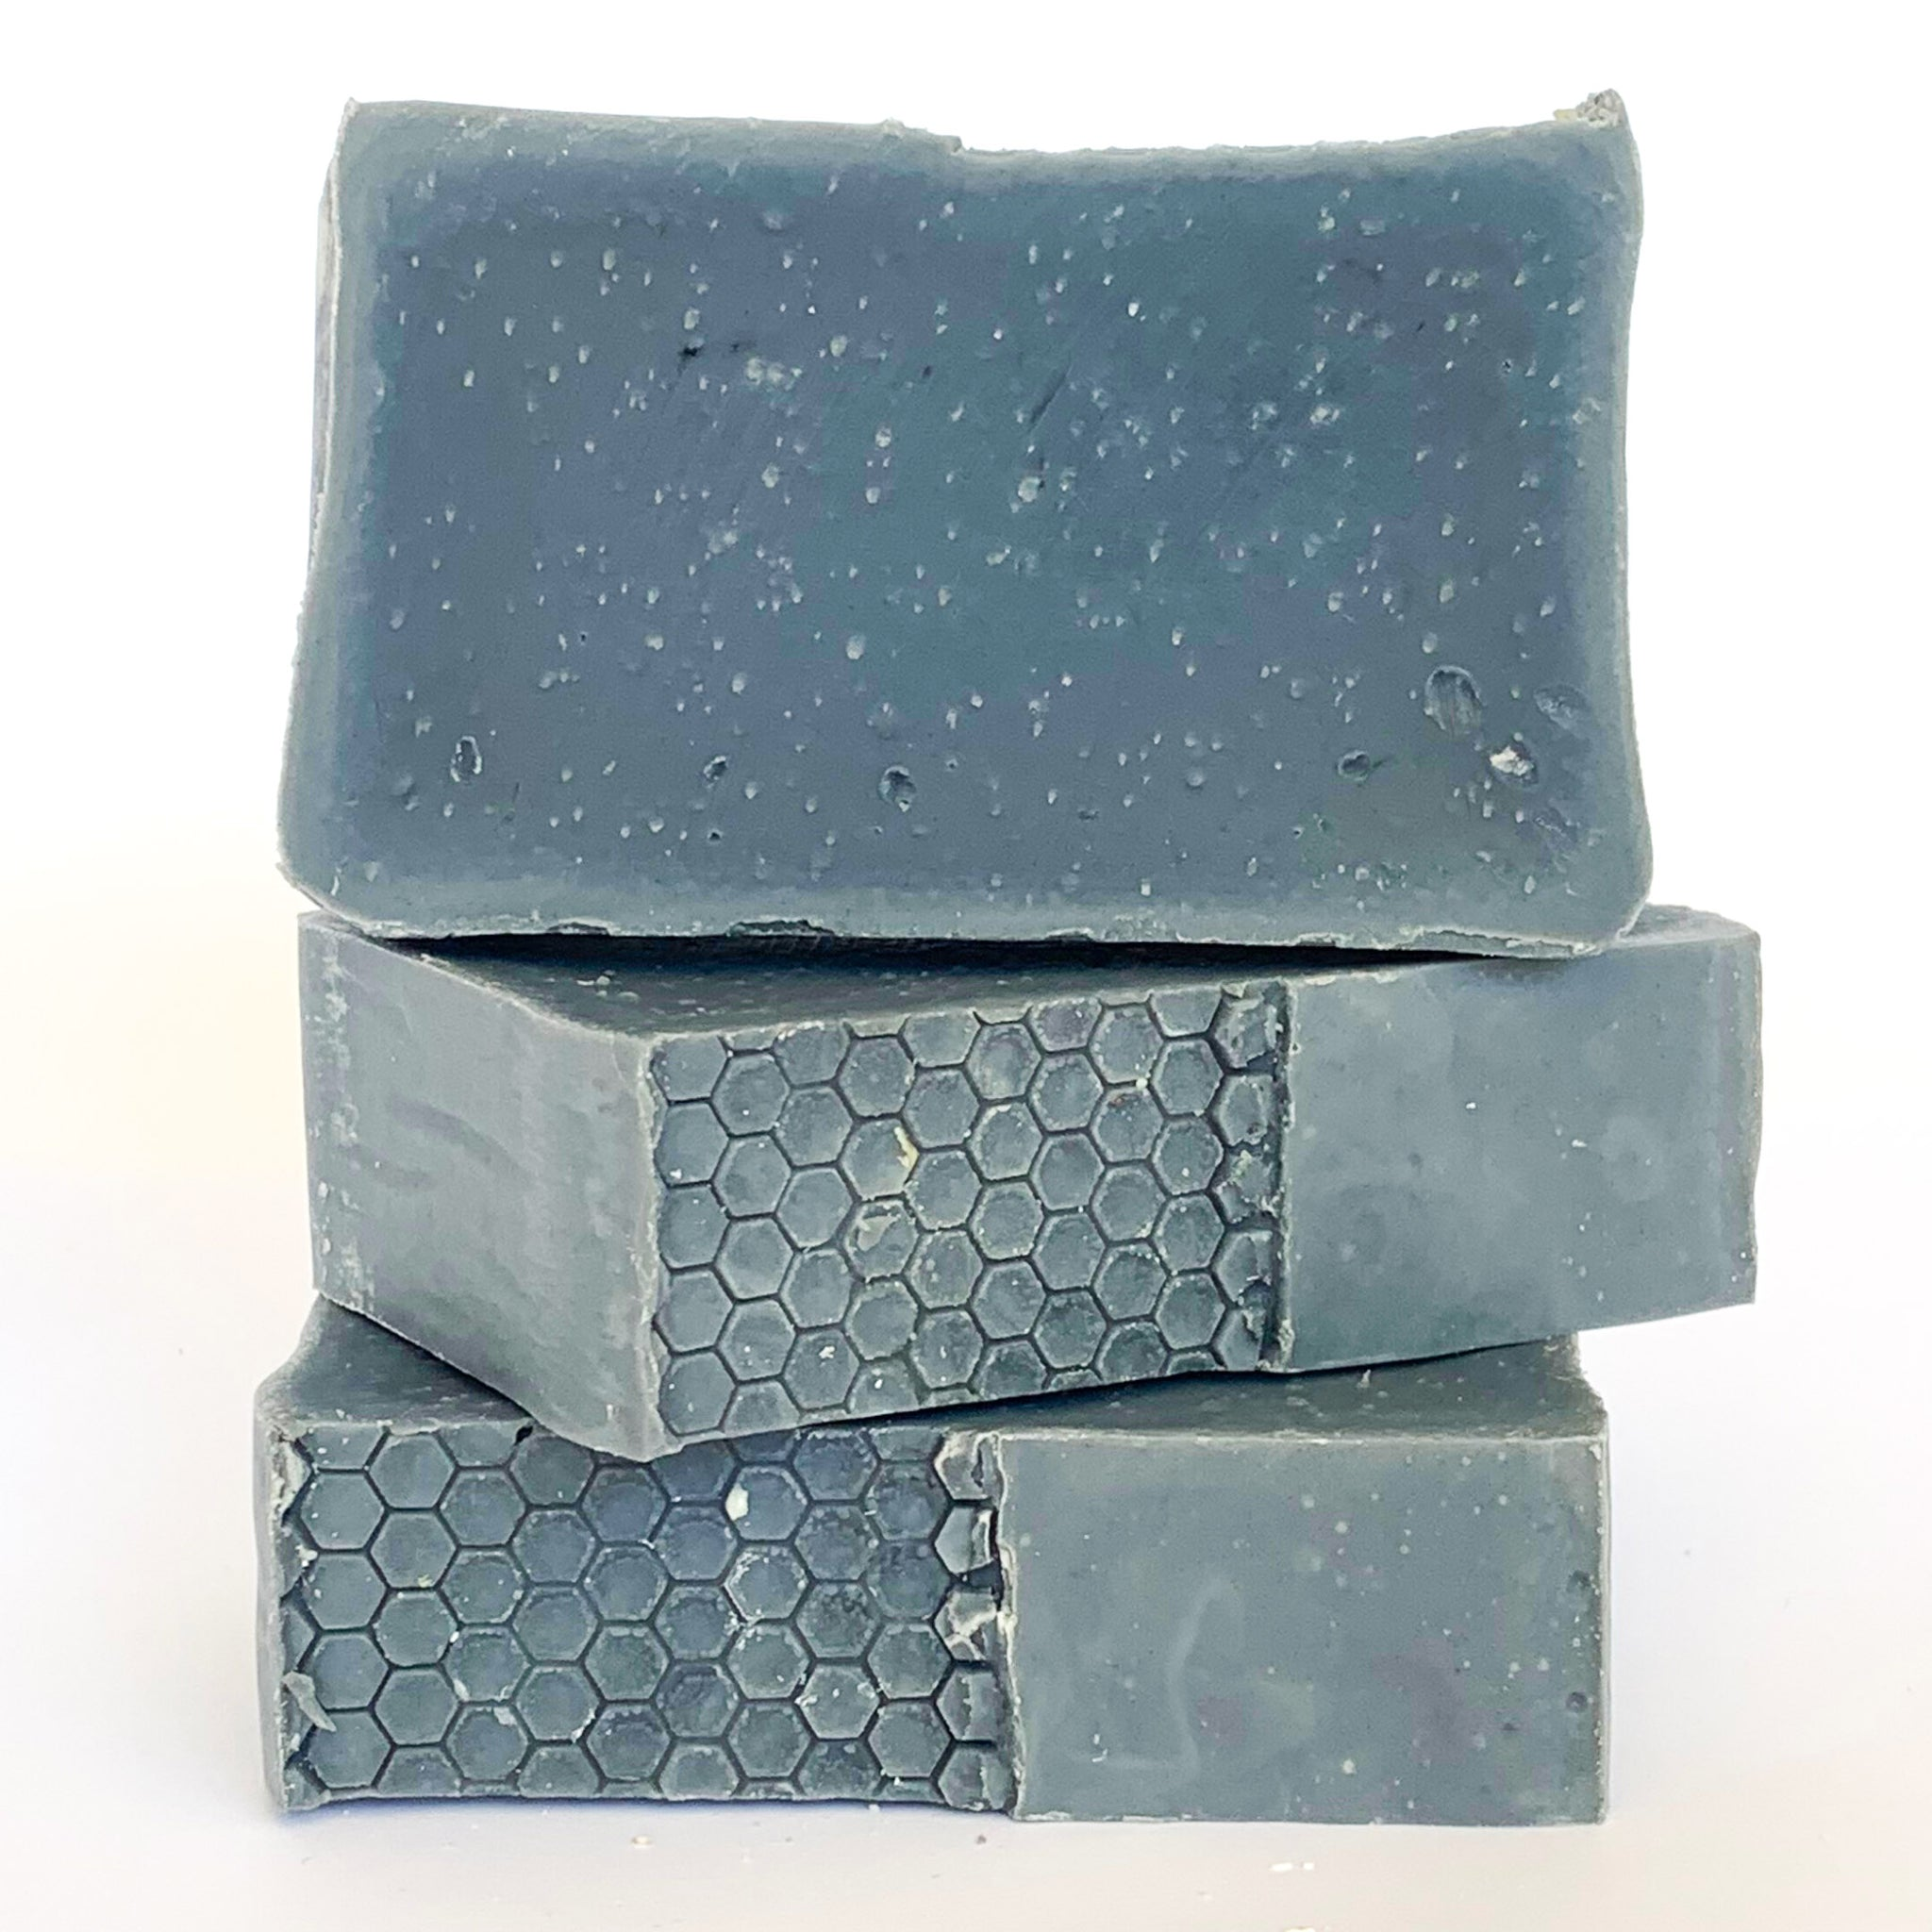 Charcoal Detox Olive Oil Soap with Beeswax